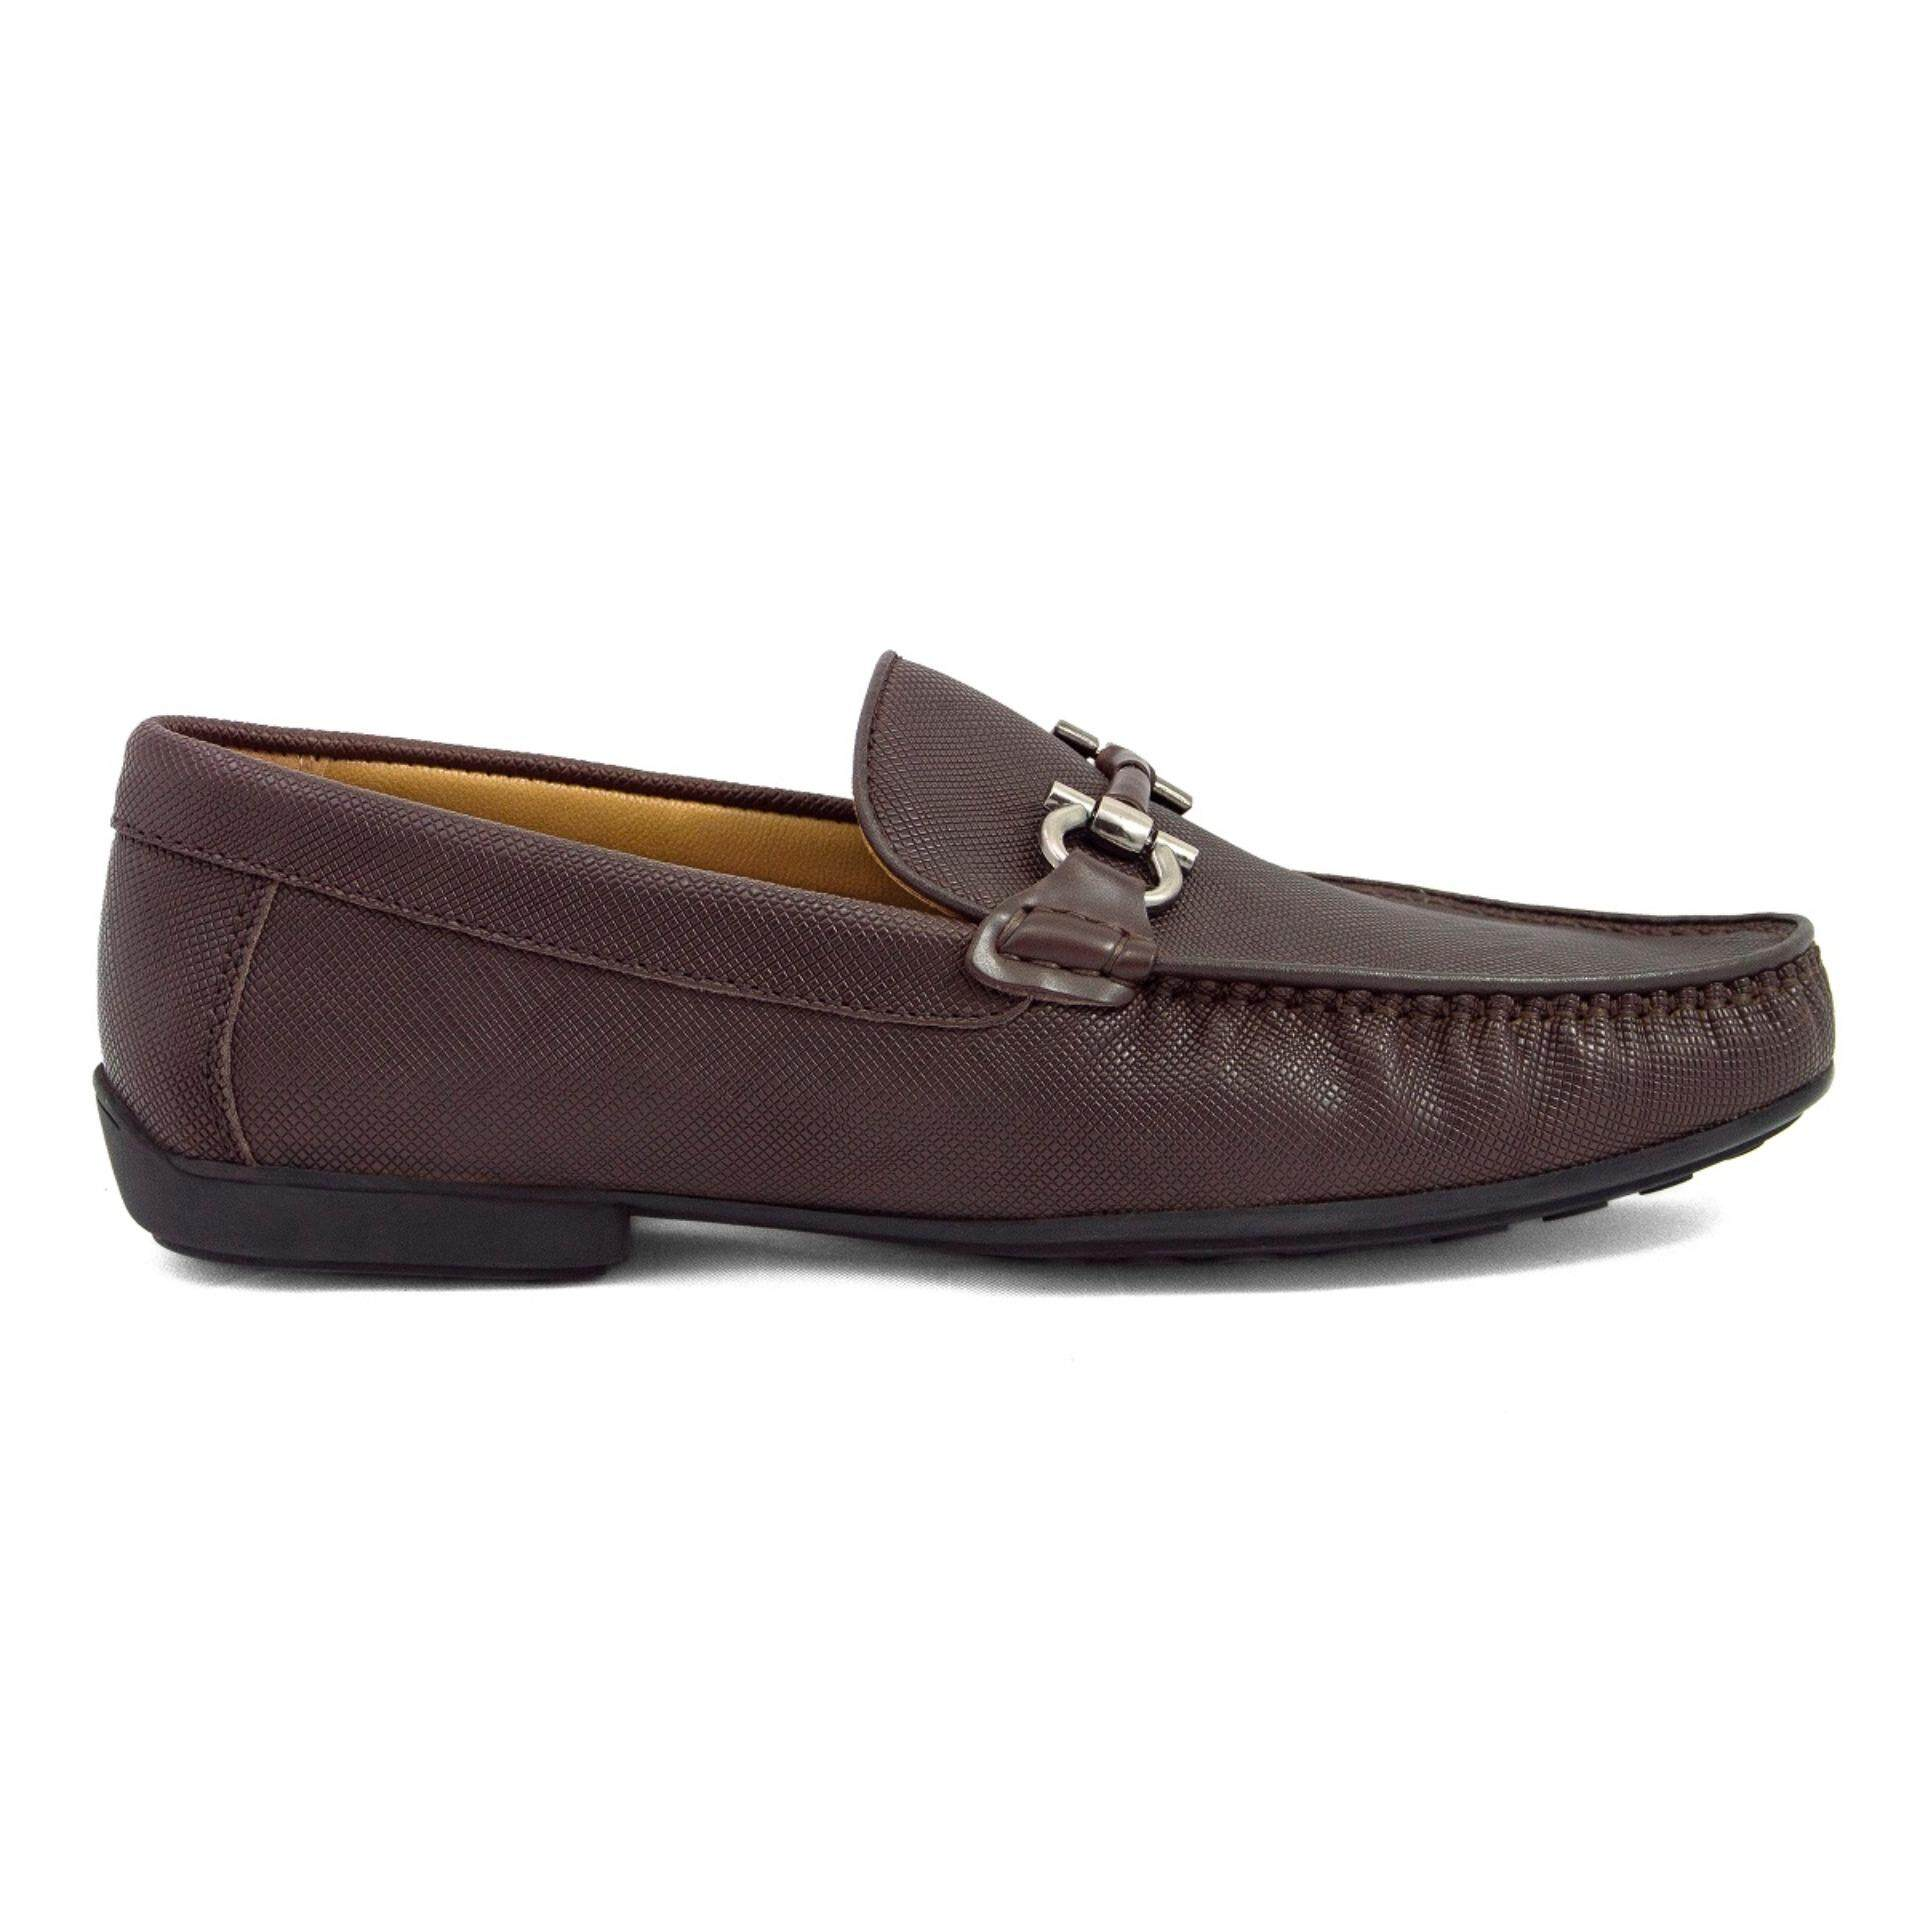 Tomaz C255 Buckled Loafers (Coffee)